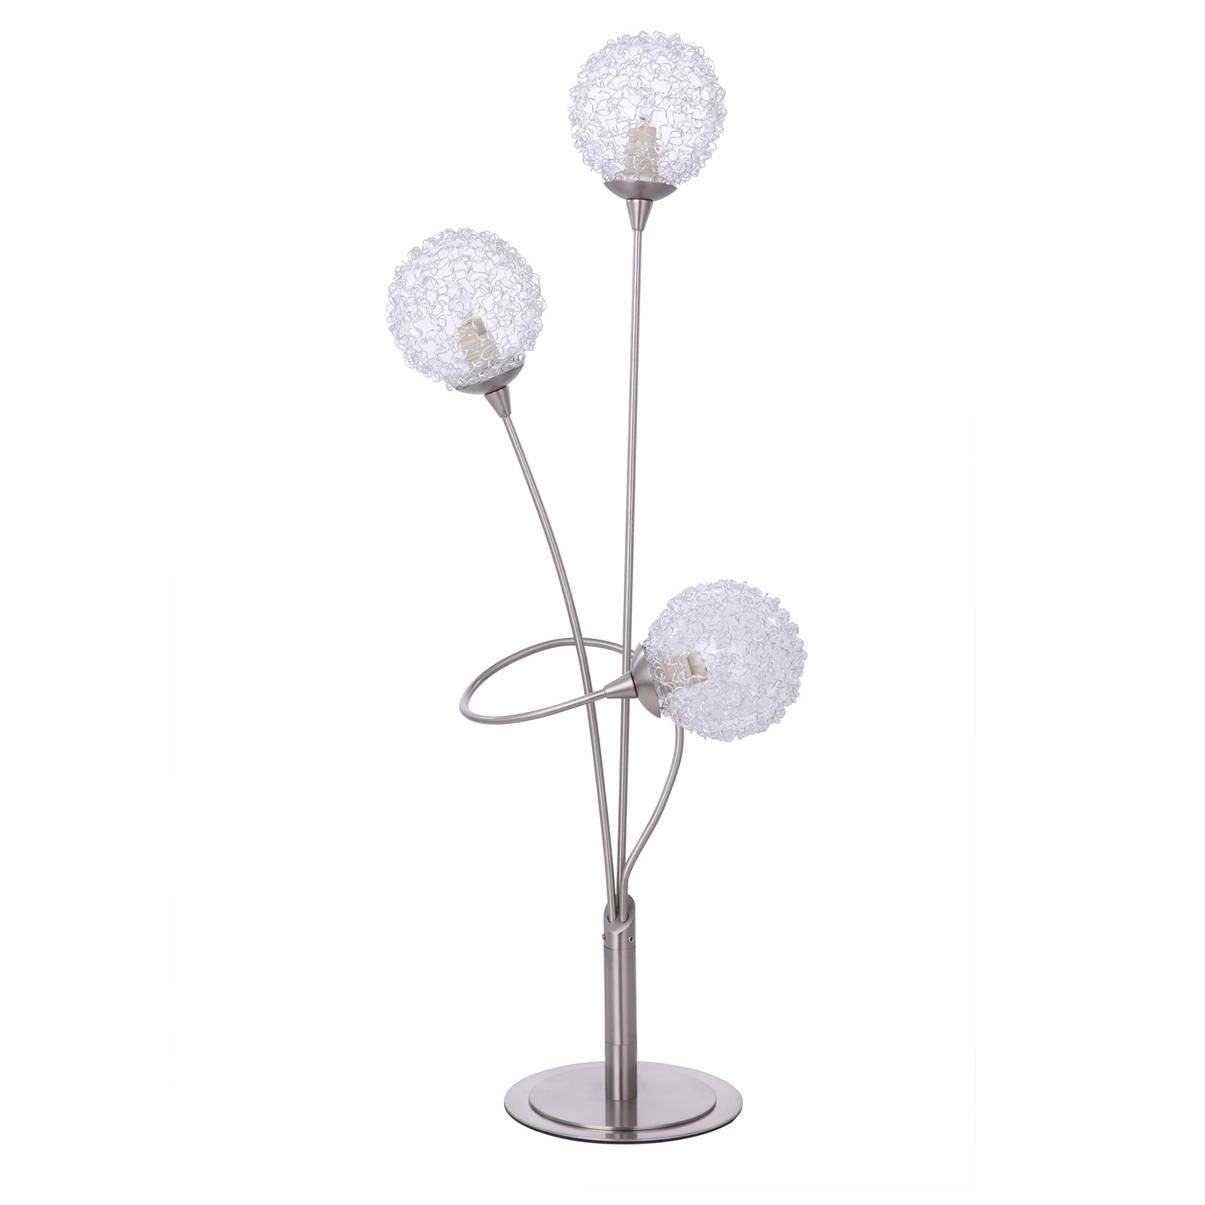 Modern table lamp allium 3 light satin nickel from litecraft allium 3 light table lamp satin nickel fastfree delivery mozeypictures Choice Image